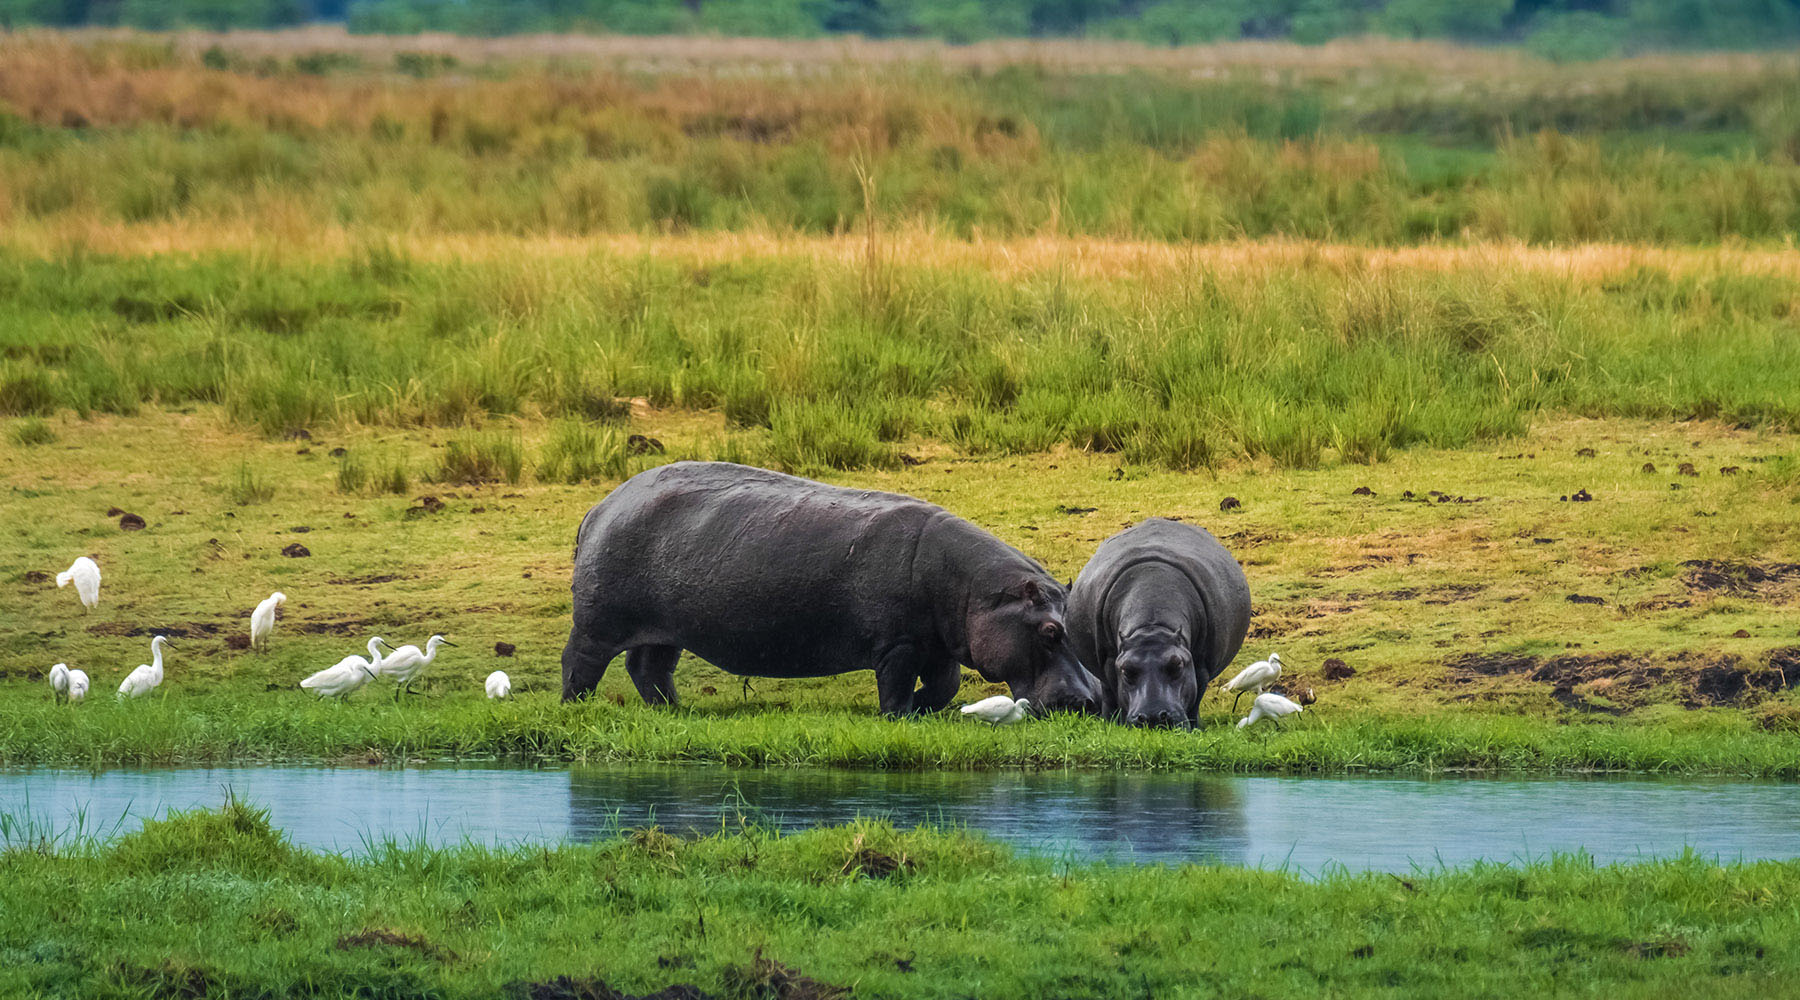 15-Night S. Africa & 5-Night Post Micato Safari